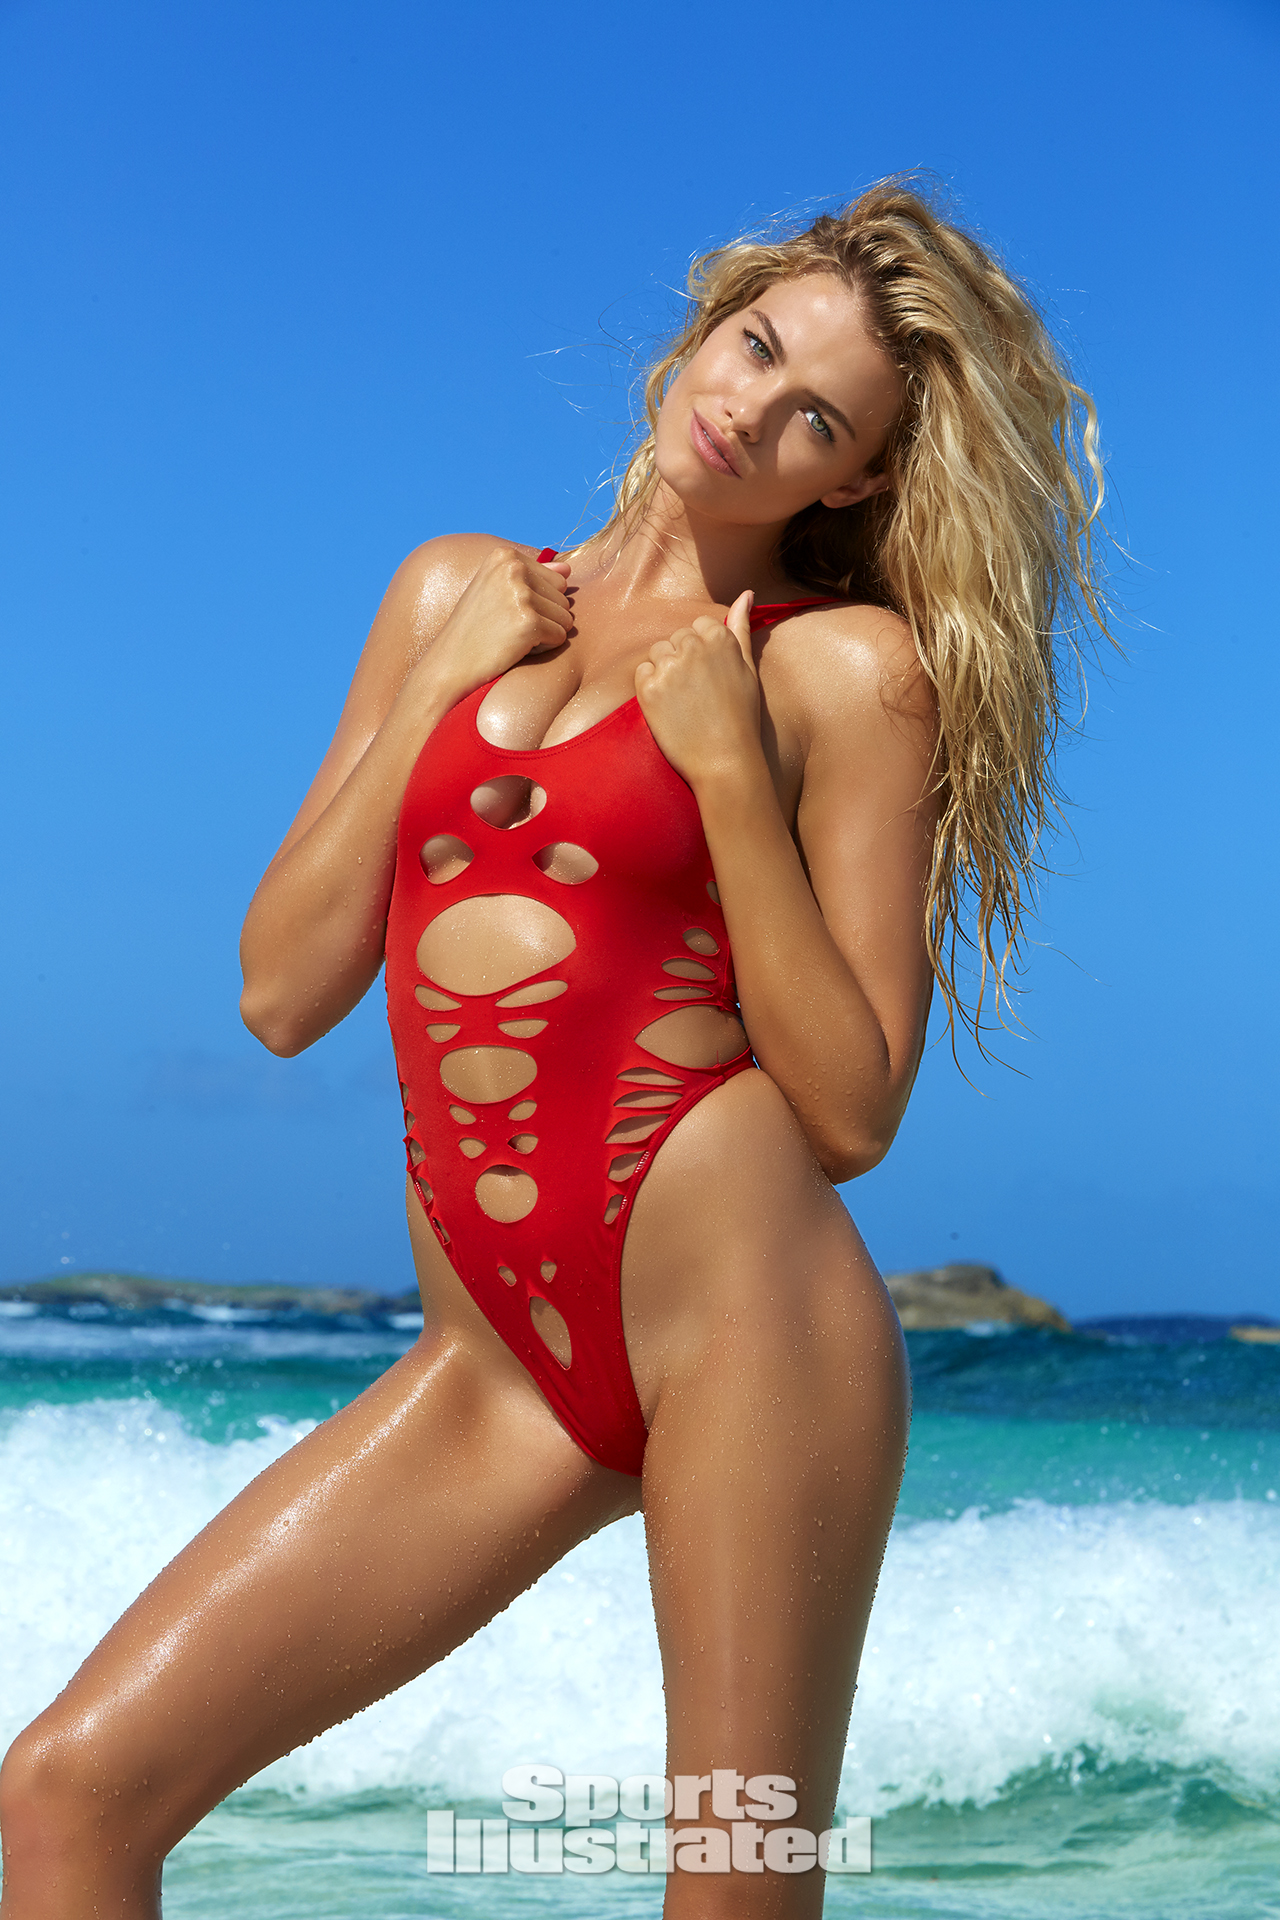 Hailey Clauson was photographed by James Macari in Turks & Caicos. Swimsuit by Haus Of PinkLemonaid.